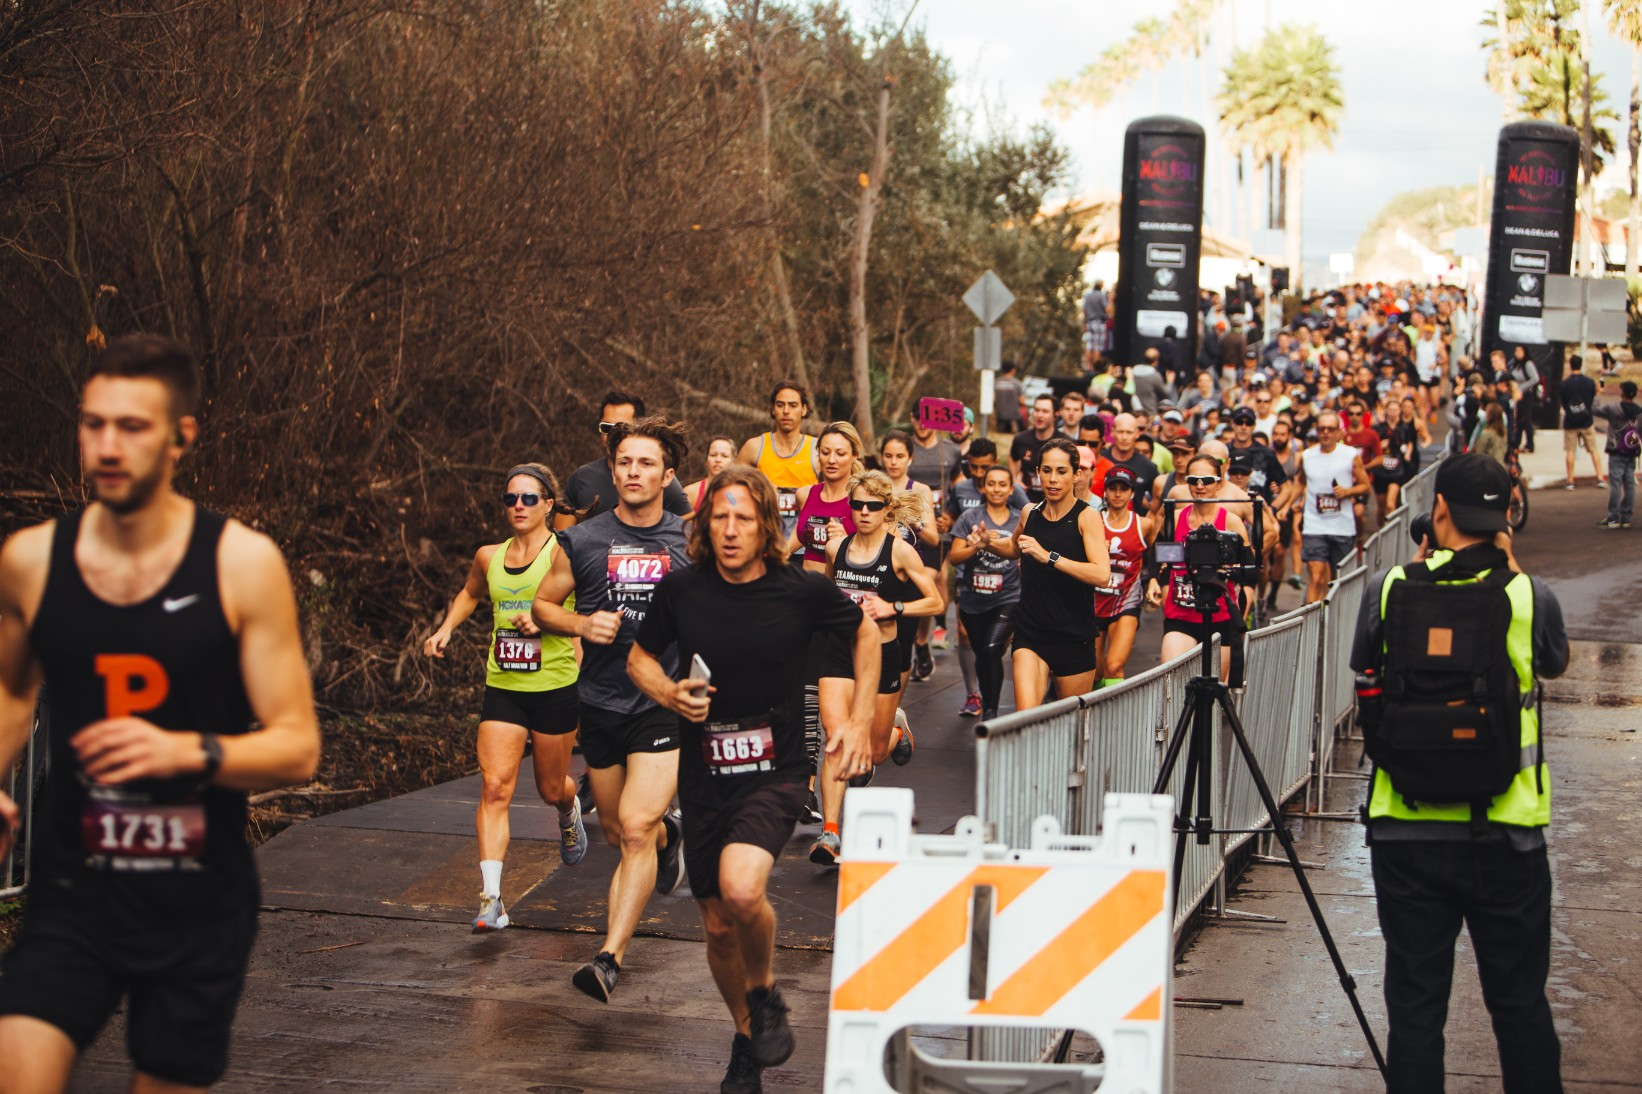 Participant of the first corral set out to run one of the mist scenic races in LA along iconic PCH (route 1).